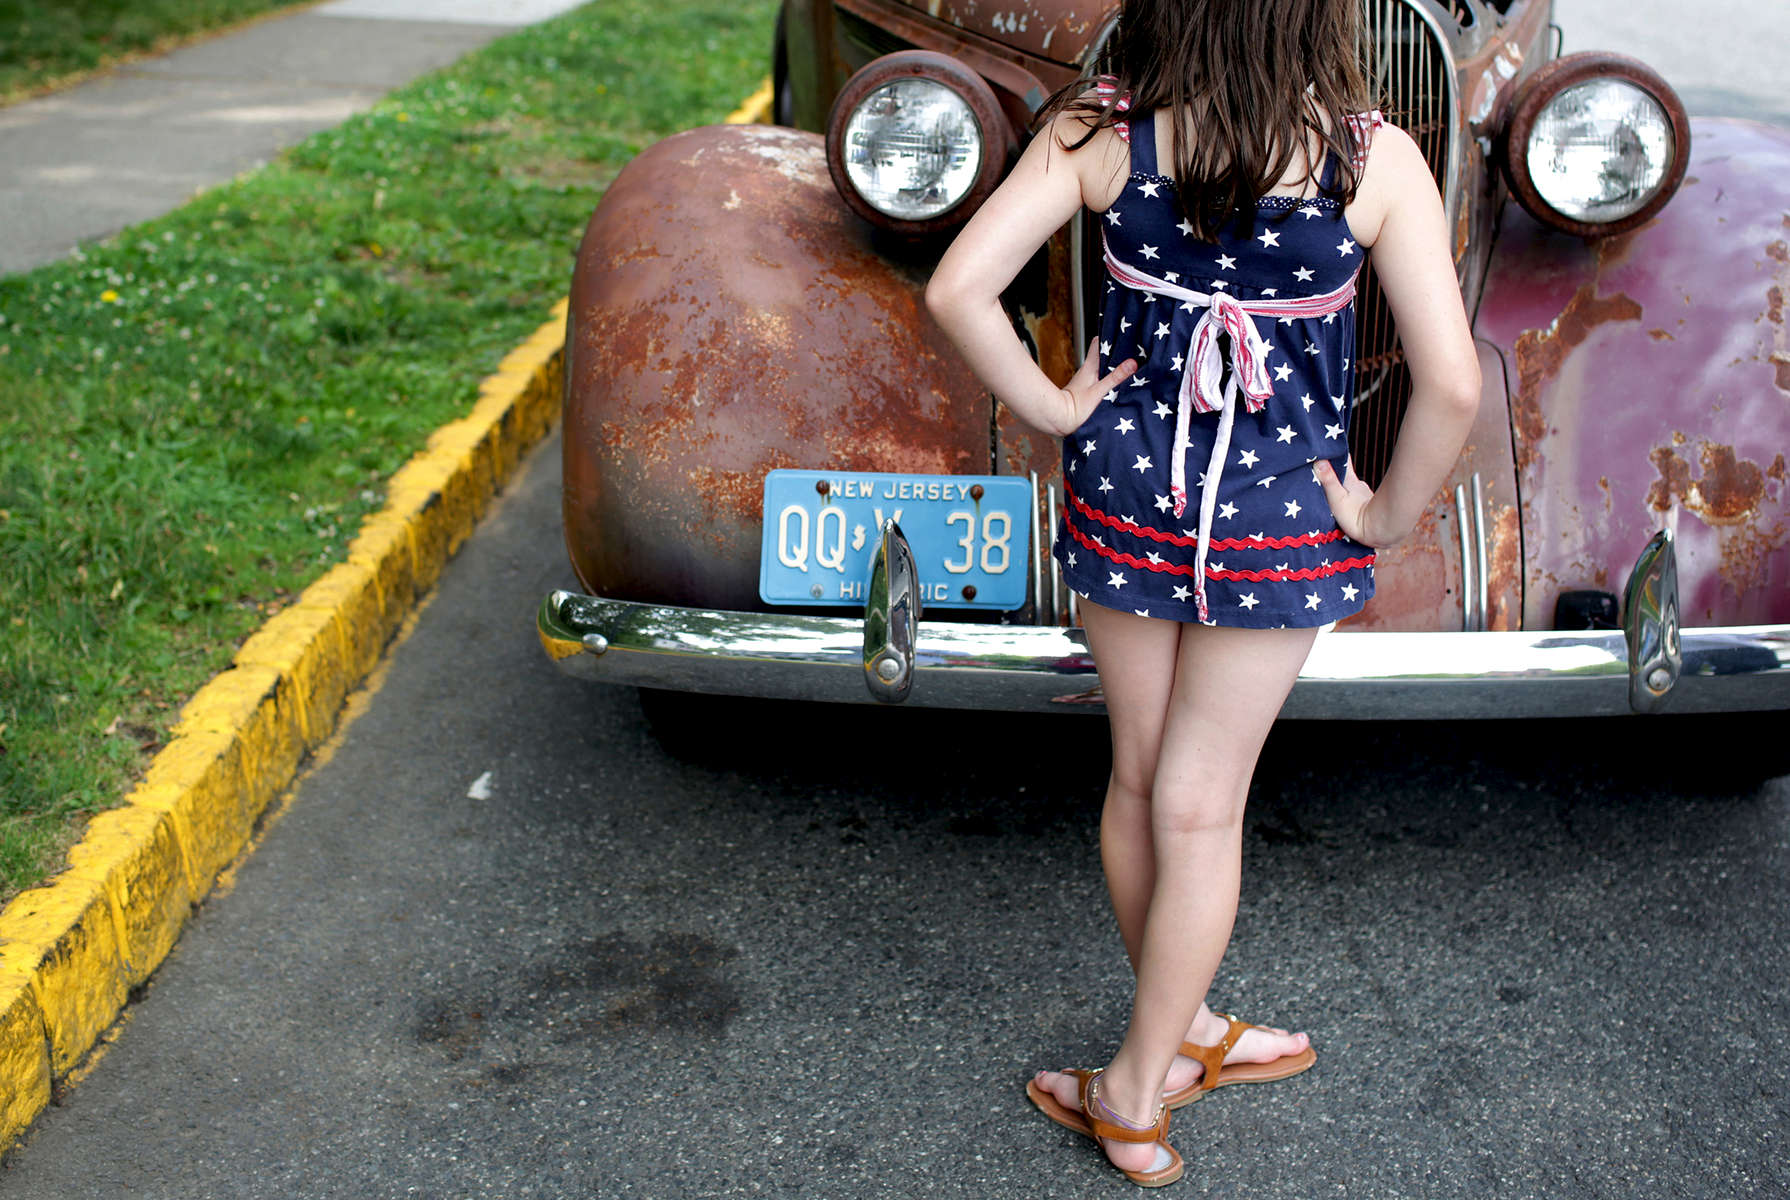 Felicita Pomares, 9, checks out a 1938 Plymouth Road King vintage car, on the way to the Fourth of July Parade in Montclair, NJ, on July 04, 2017.(For The New York Times)